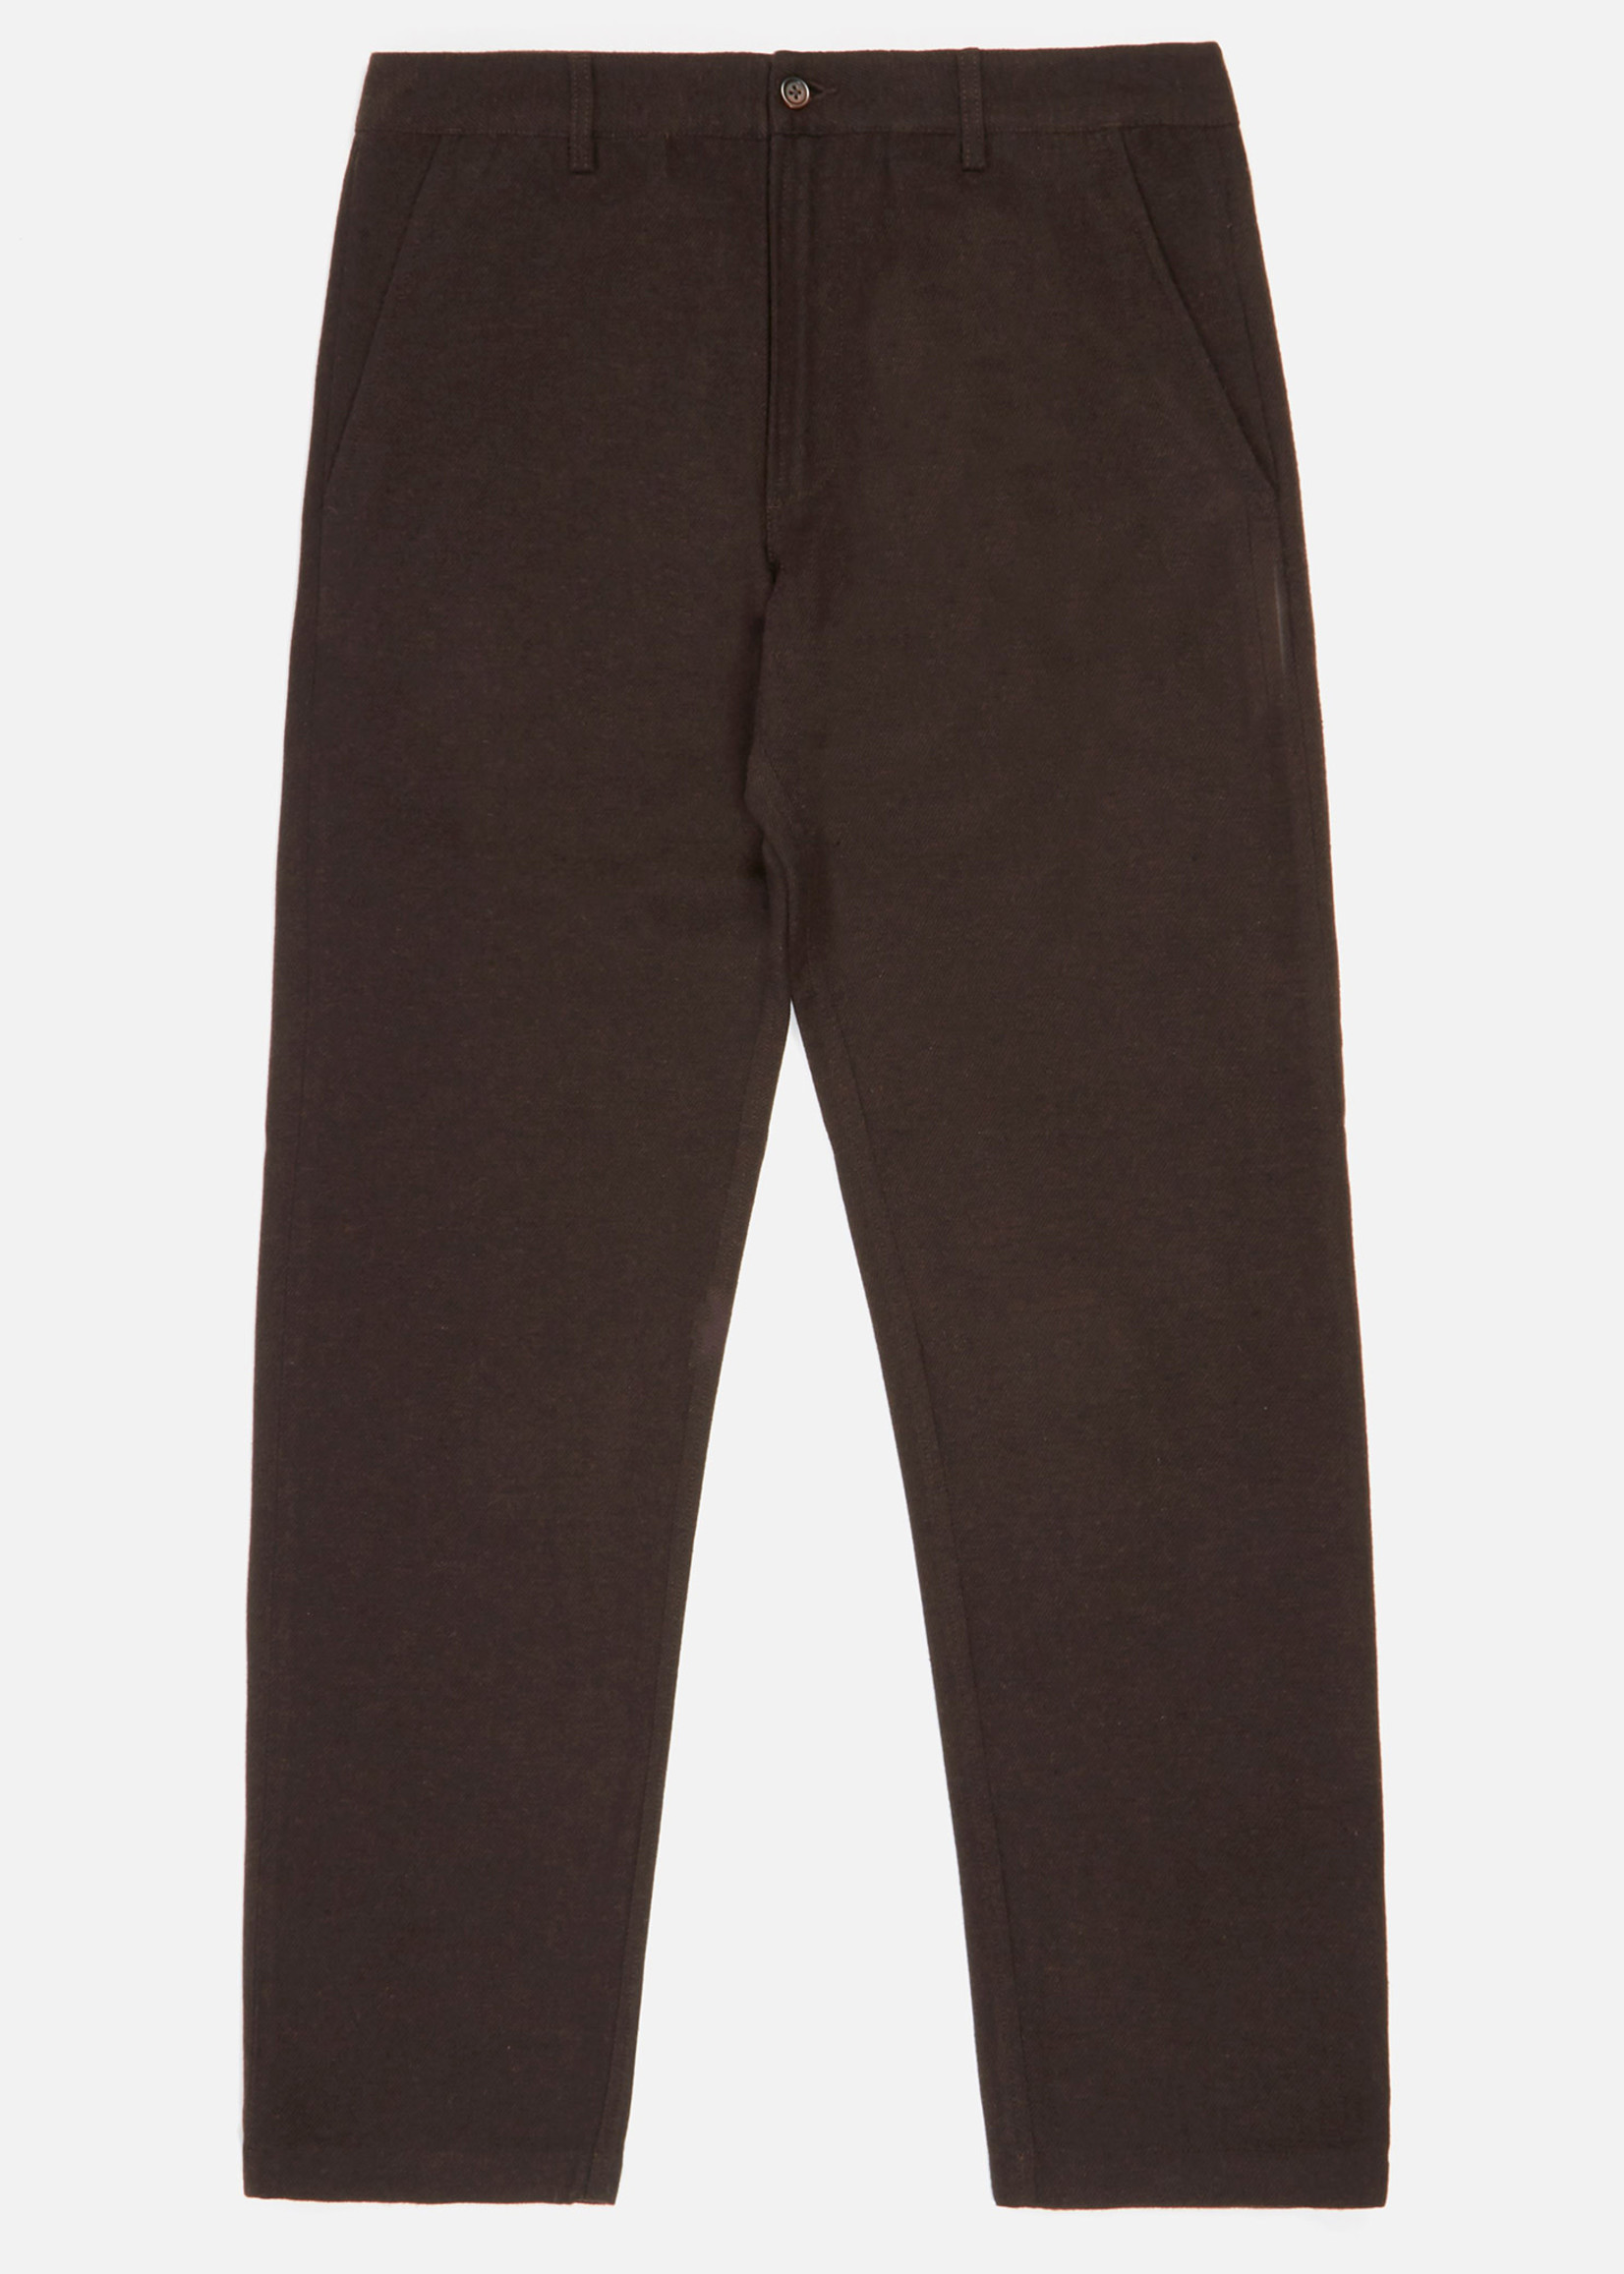 Universal Works Universal Works Aston Pant in Chocolate Wool/Poly